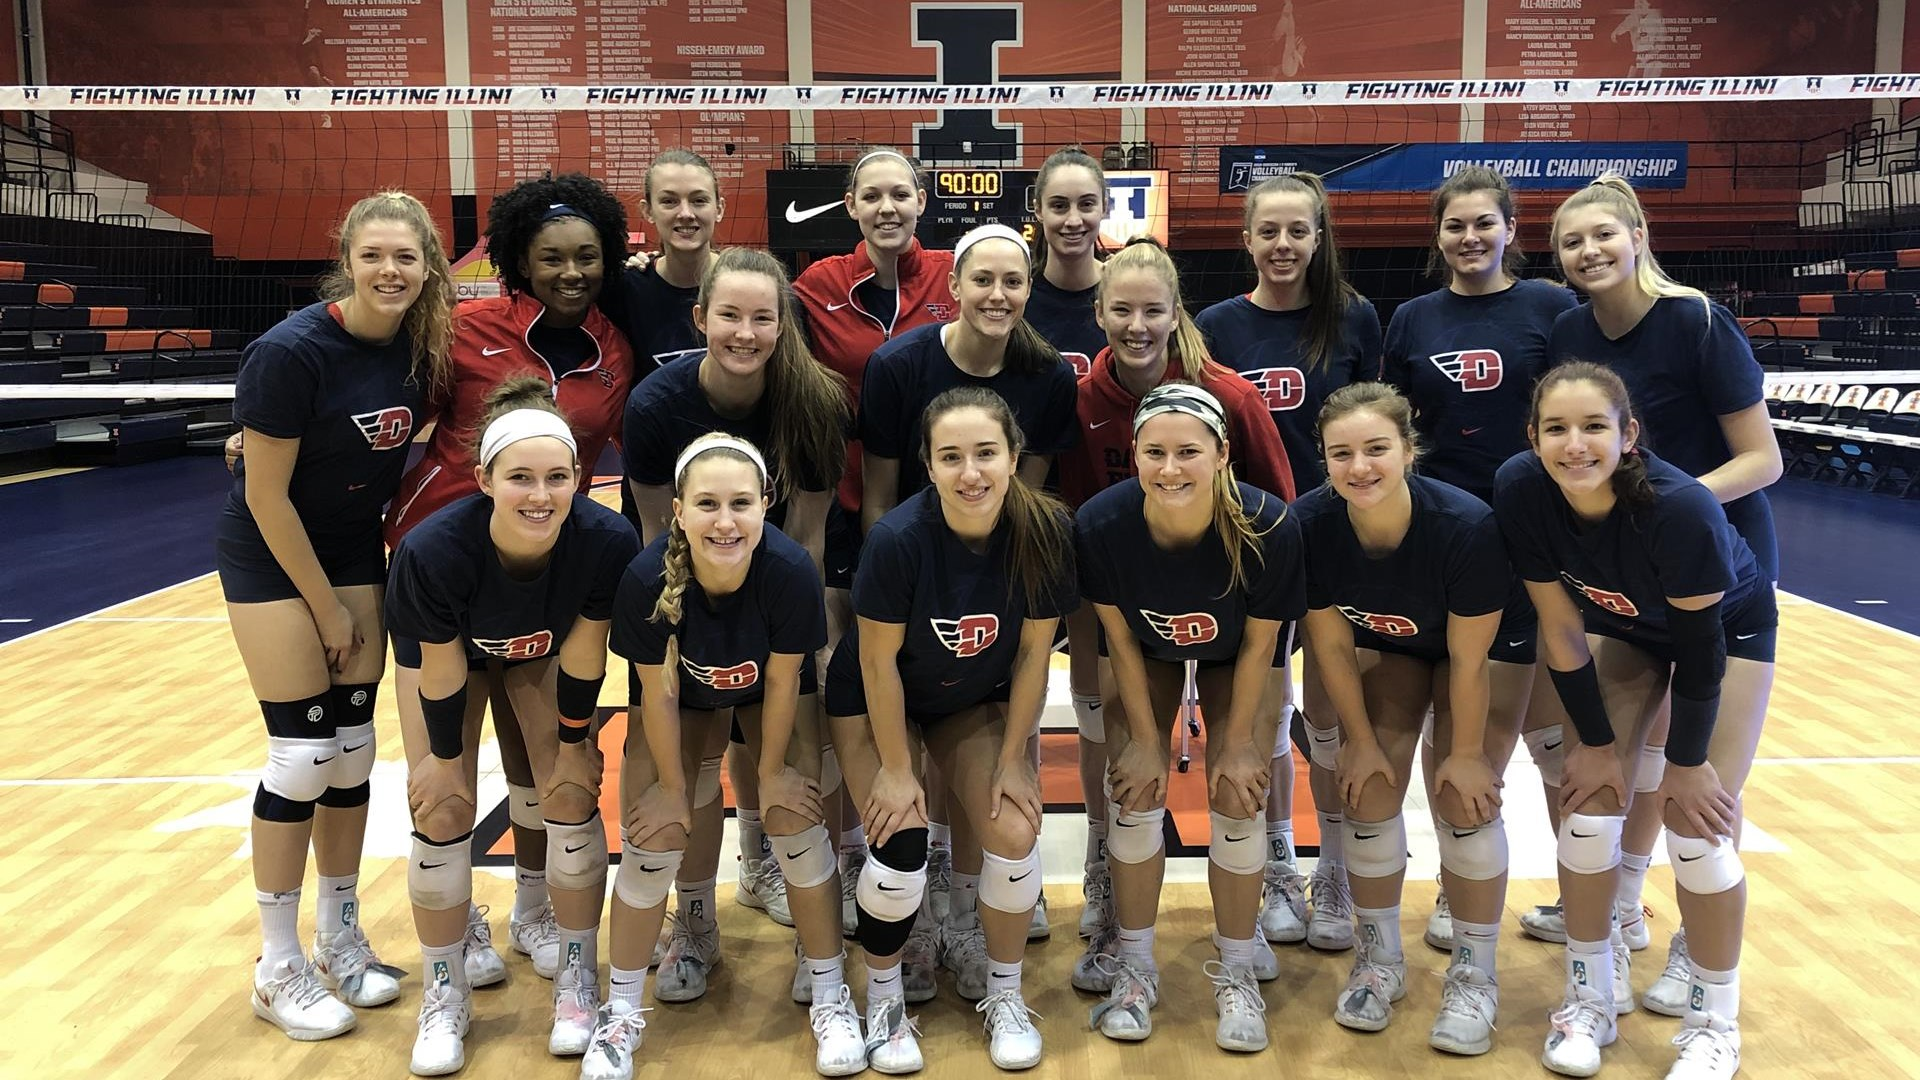 Udvb Squaring Off Against Louisville In Ncaavb First Round University Of Dayton Athletics